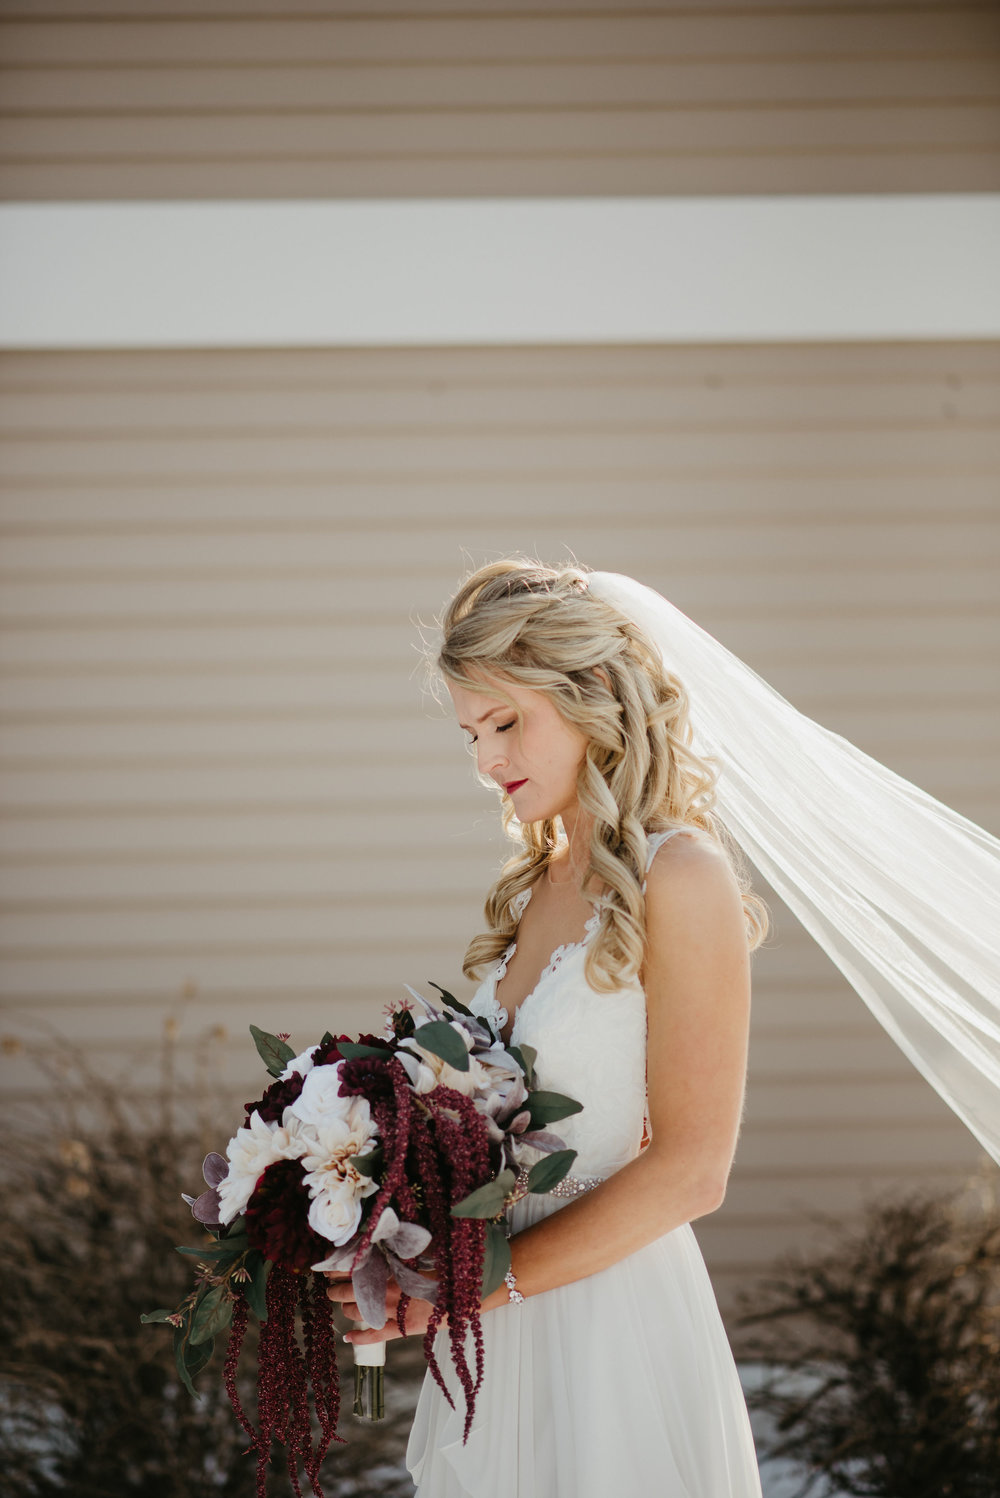 Burgundy-modified-cascade-silk-wedding-bouquet-roses-eucalyptus-branches-3.jpg